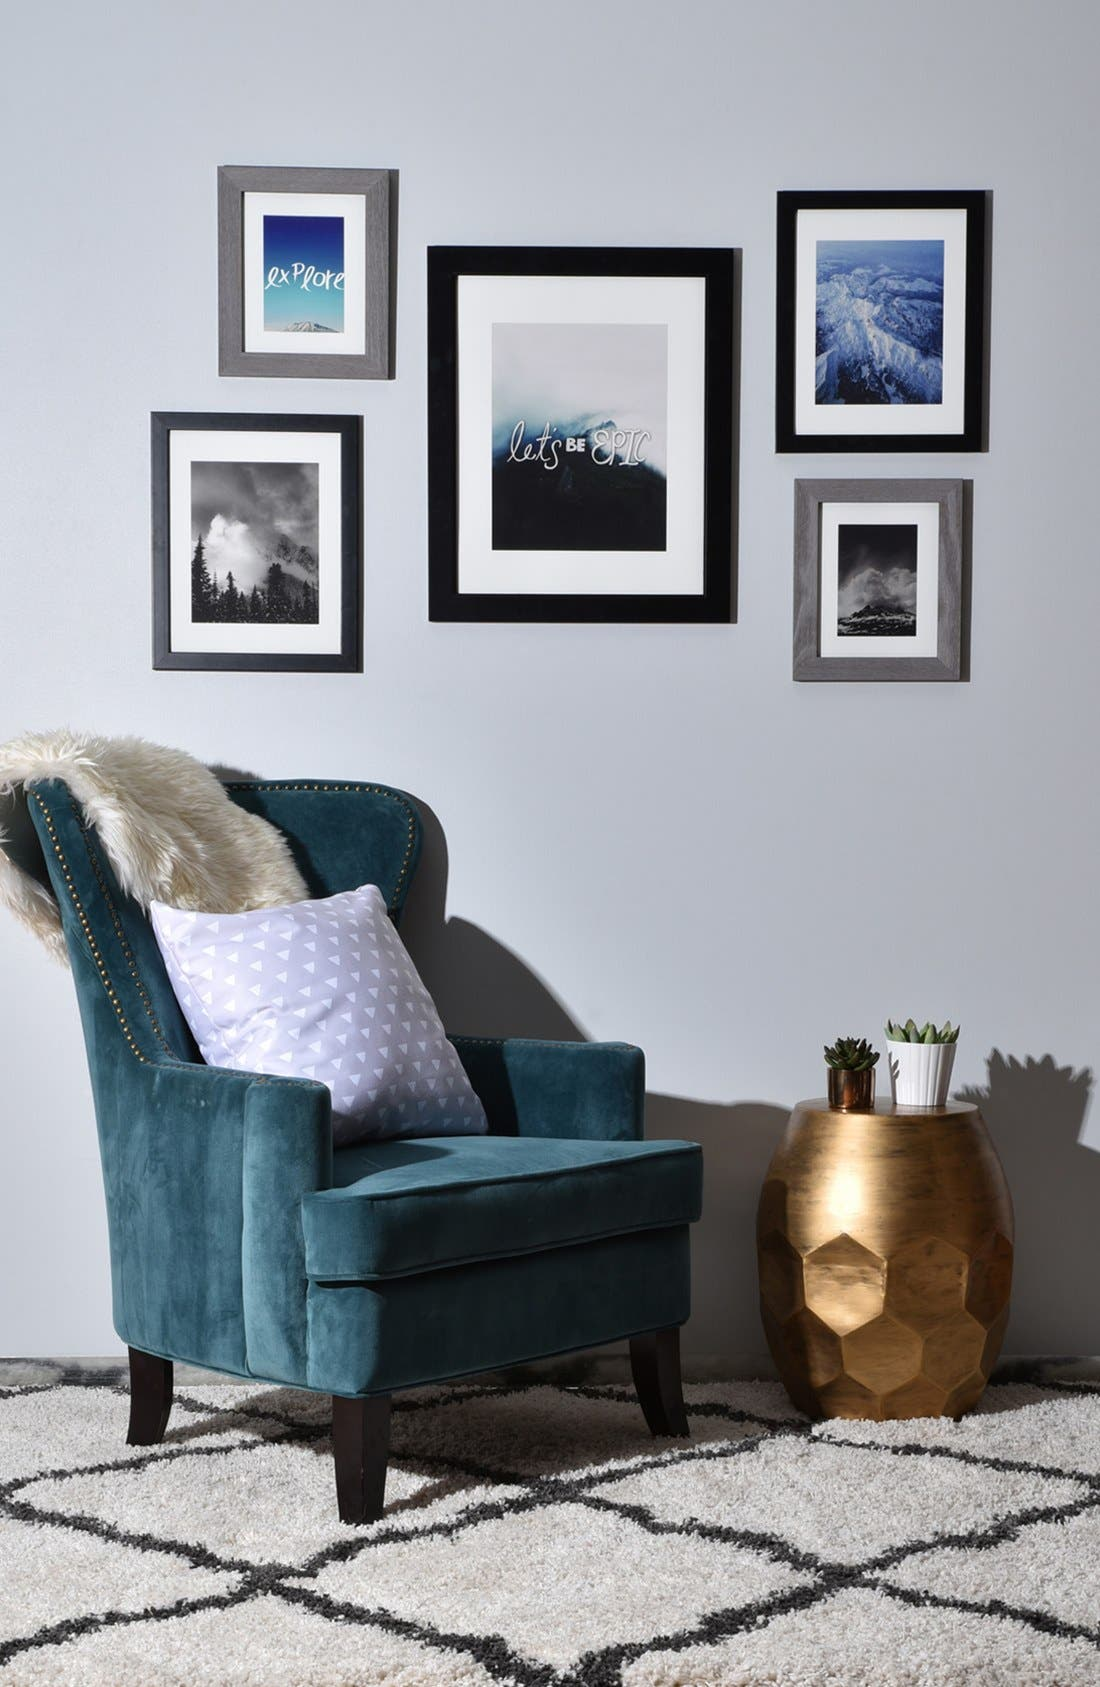 'Let's Be Epic' Wall Art Gallery,                             Alternate thumbnail 2, color,                             White